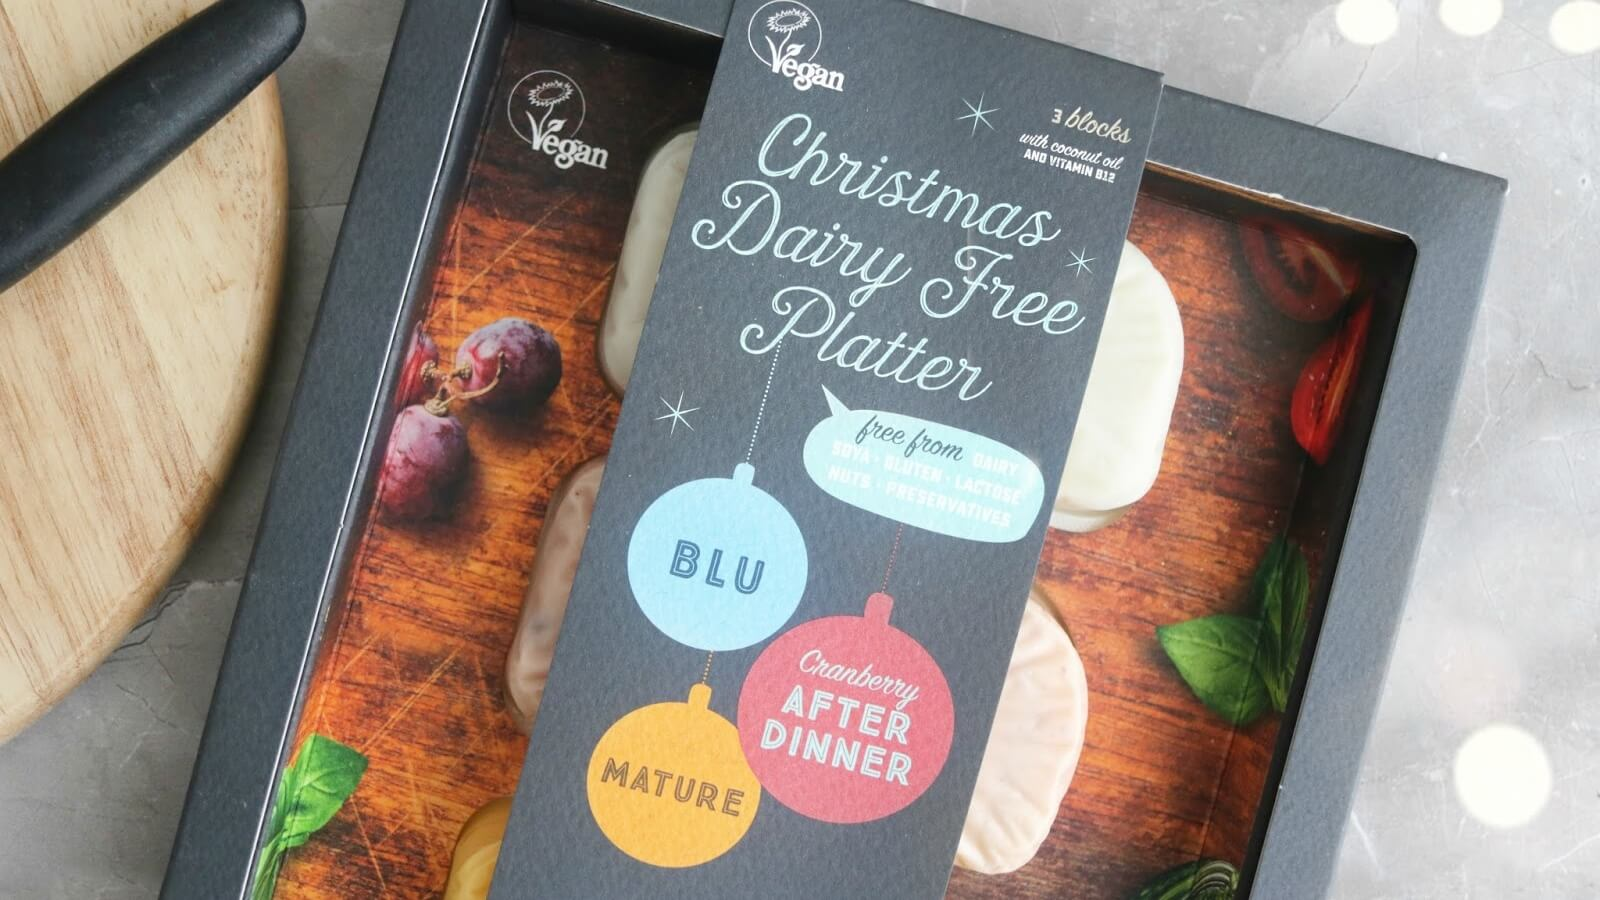 Violife Launches Vegan Christmas Cheese Platter Featuring Dairy-Free Blu, Mature, and Cranberry